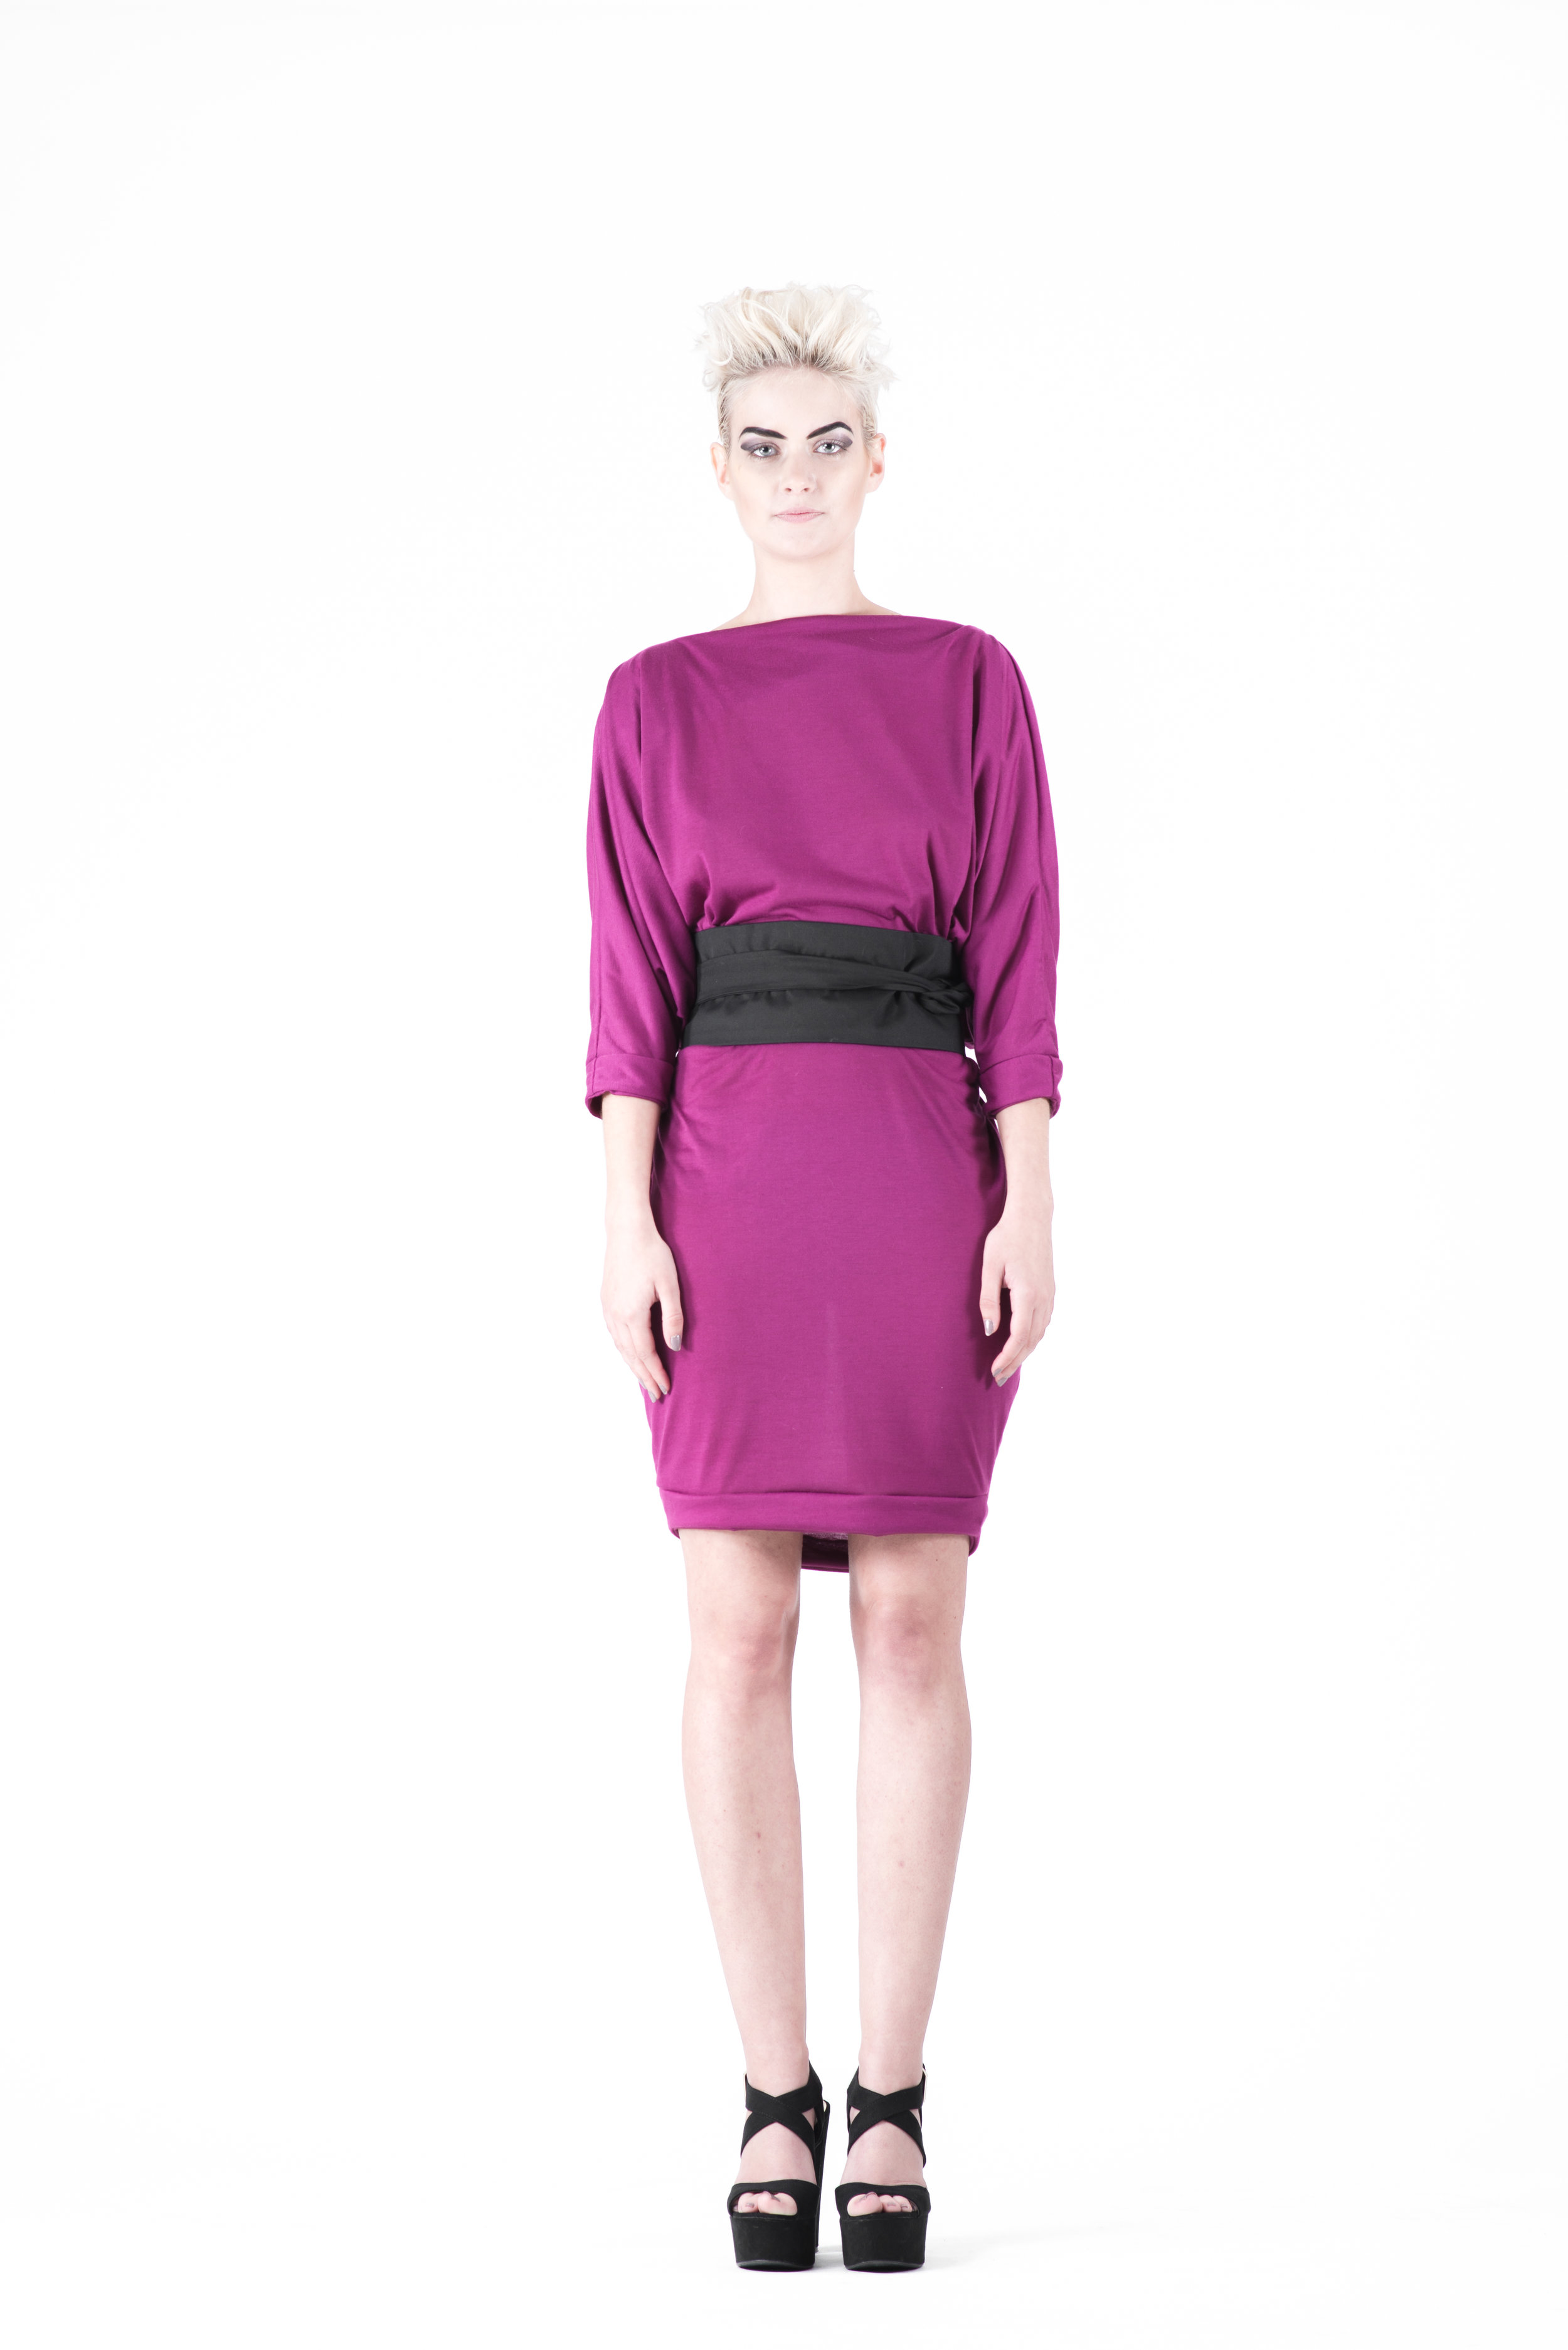 zaramia-ava-zaramiaava-leeds-fashion-designer-ethical-sustainable-tailored-minimalist-ayaka-magenta-dress-versatile-drape-cowl-styling-womenswear-models-photoshoot-32